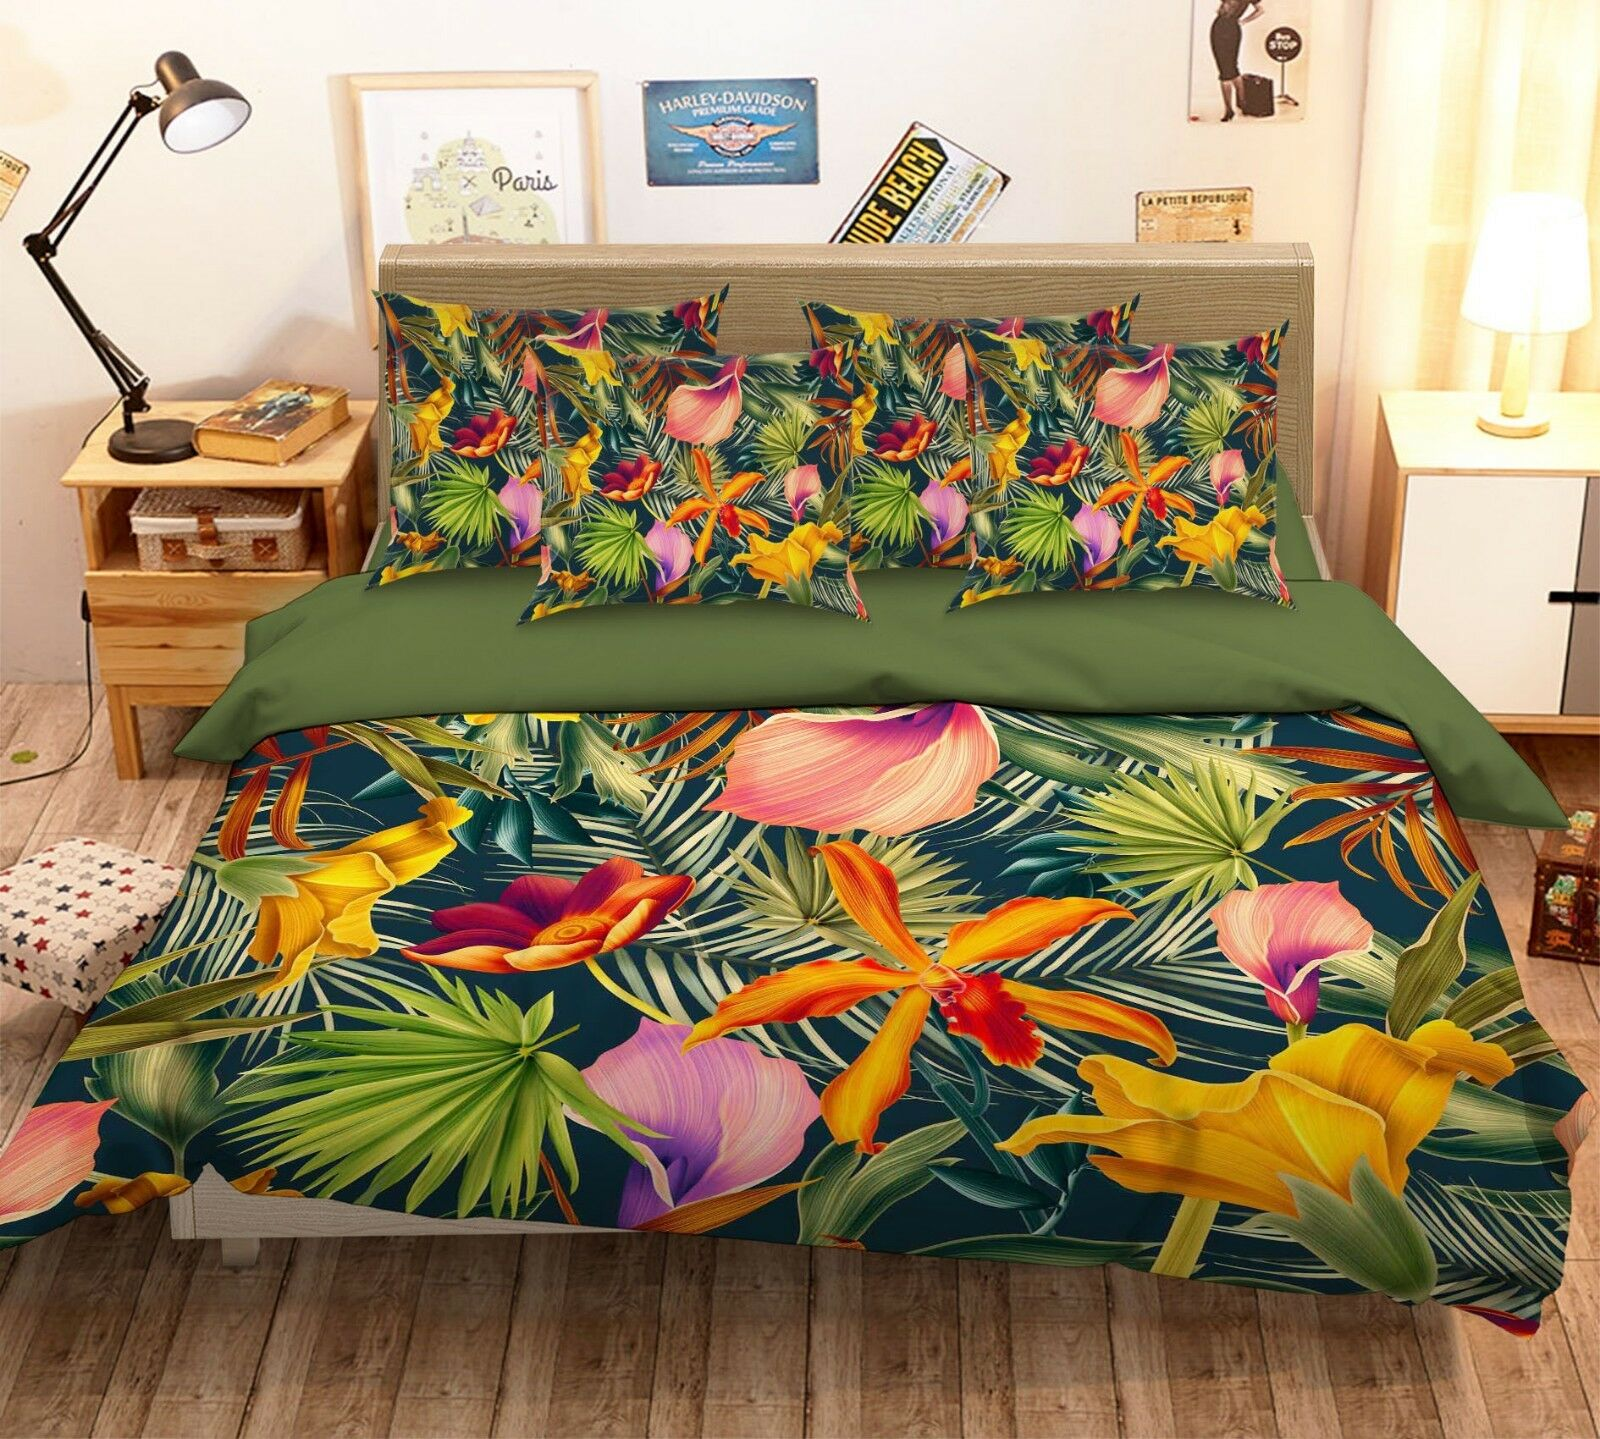 3D Painted Leaves 68 Bed Pillowcases Quilt Duvet Cover Set Single Queen AU Carly